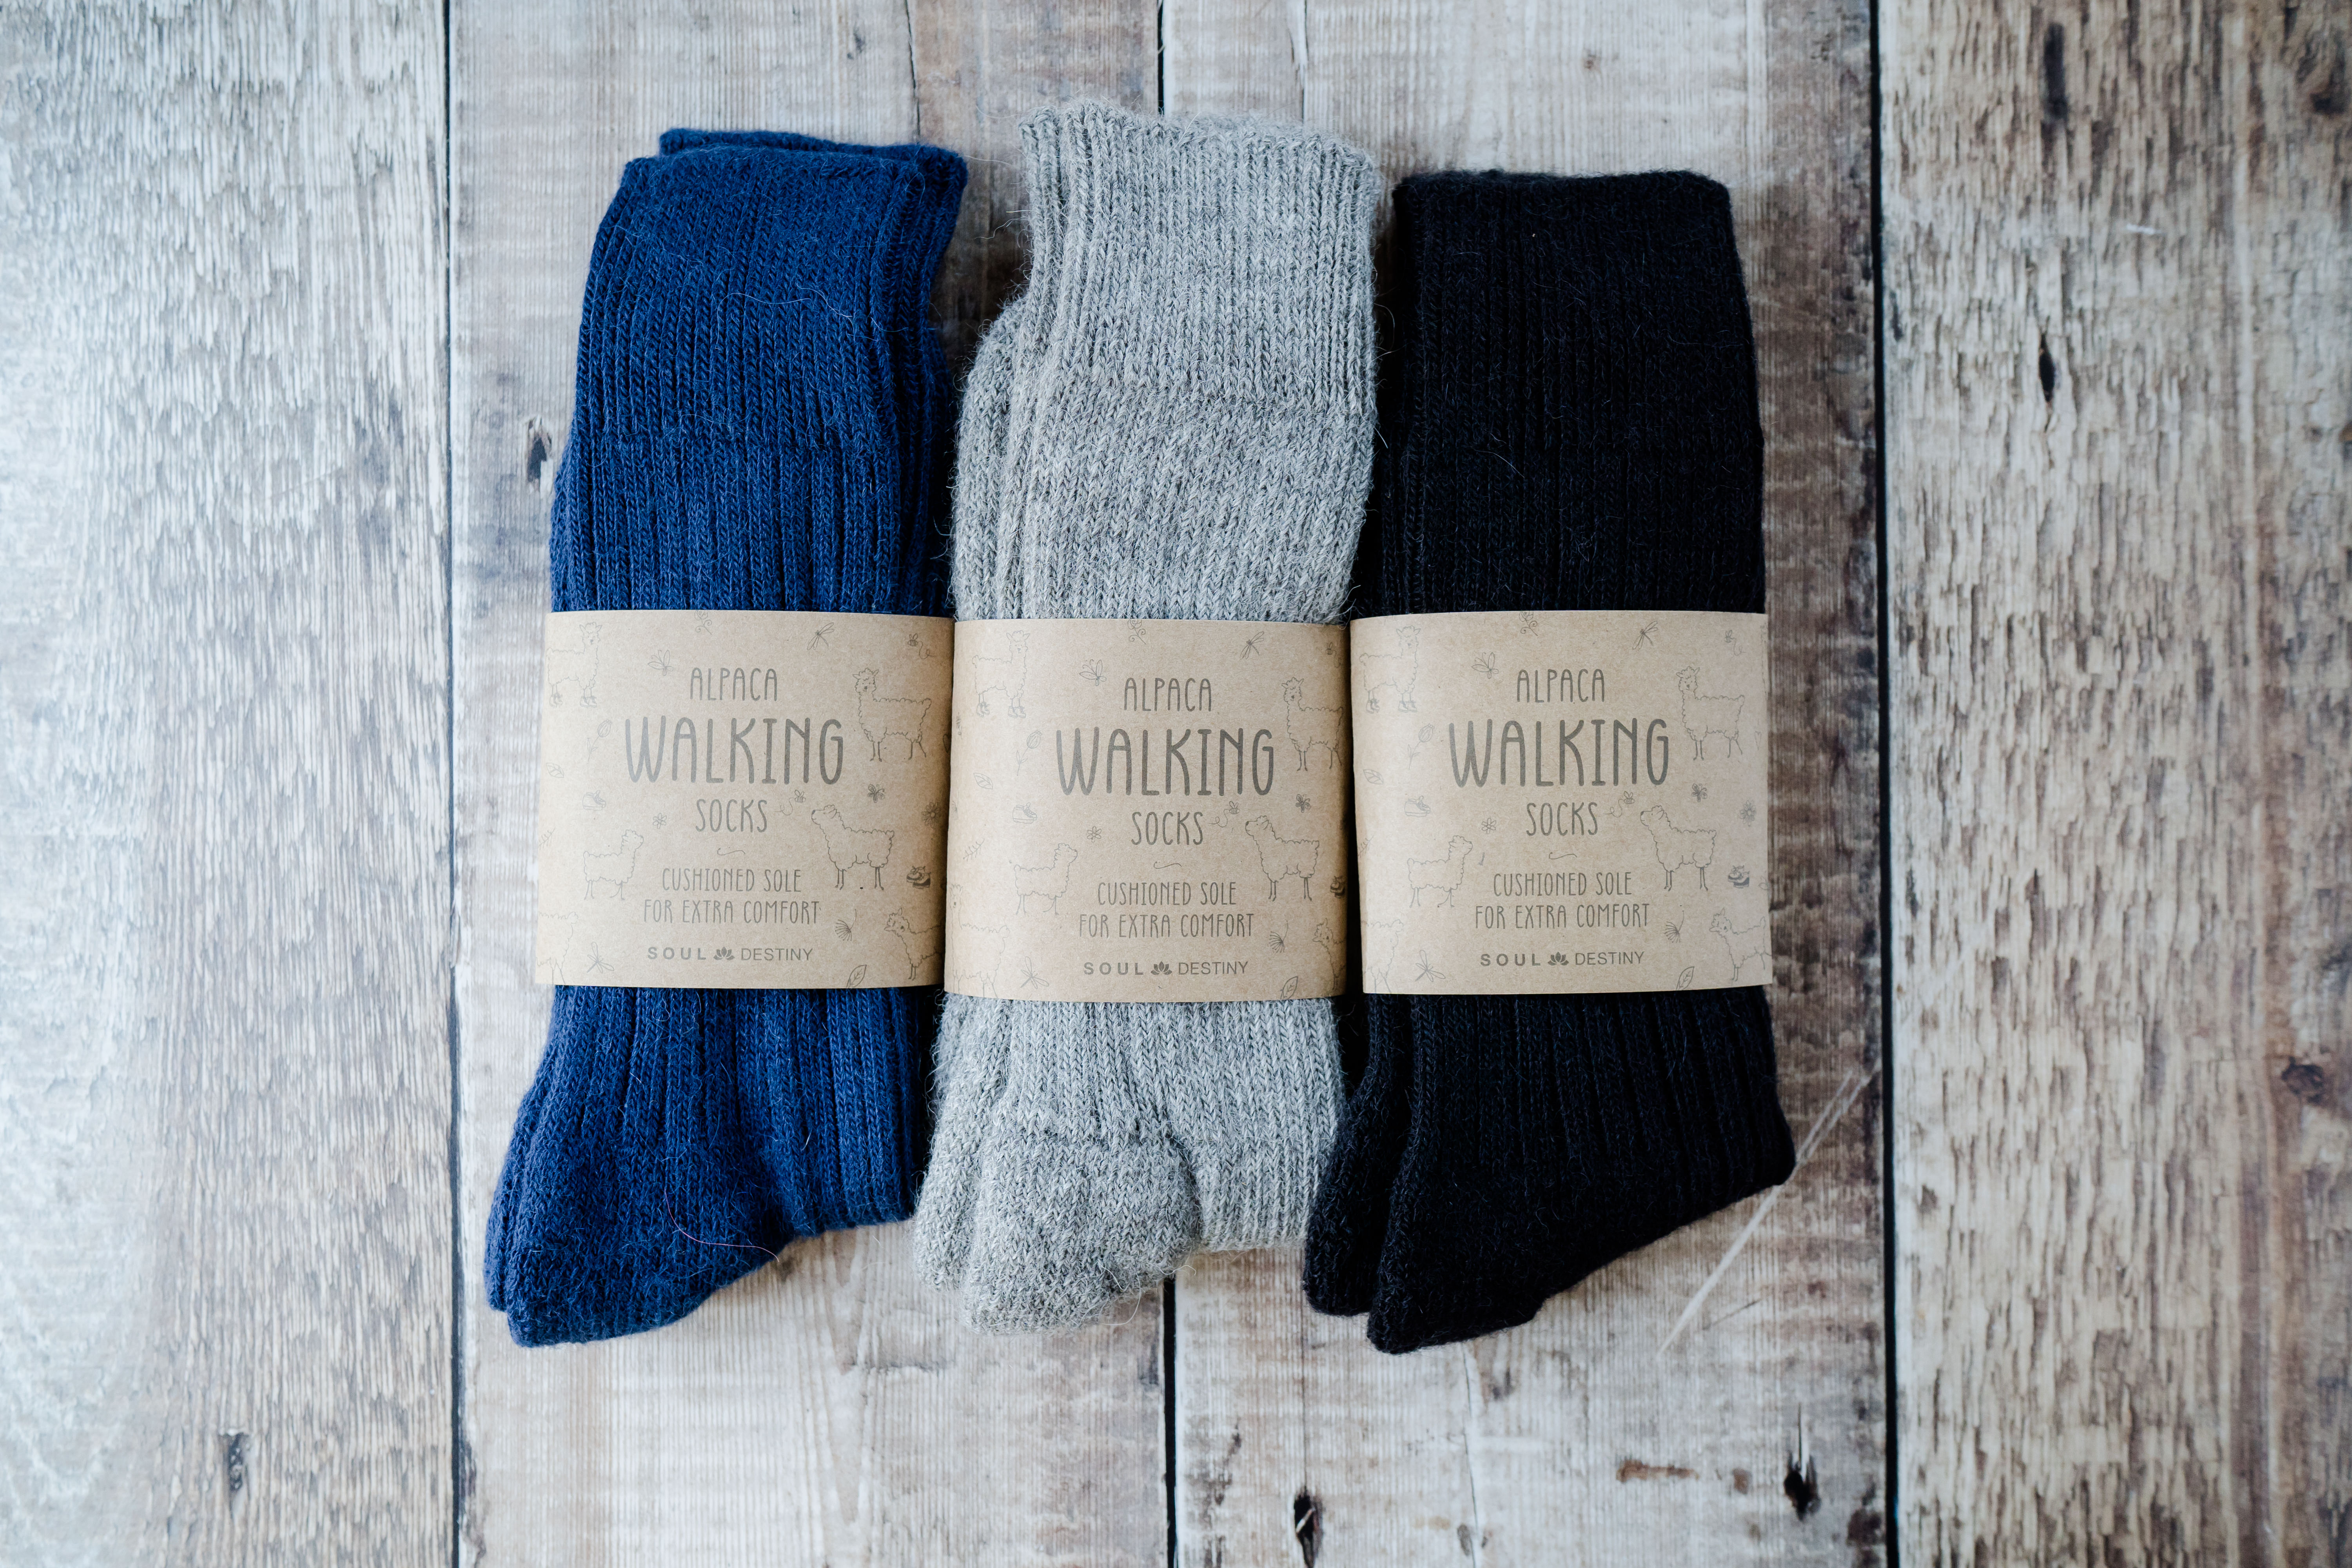 Gift Pack Idea E  3 pairs of Alpaca Walking Socks, Cushioned Sole,  75% Alpaca Wool. Alpaca Sock